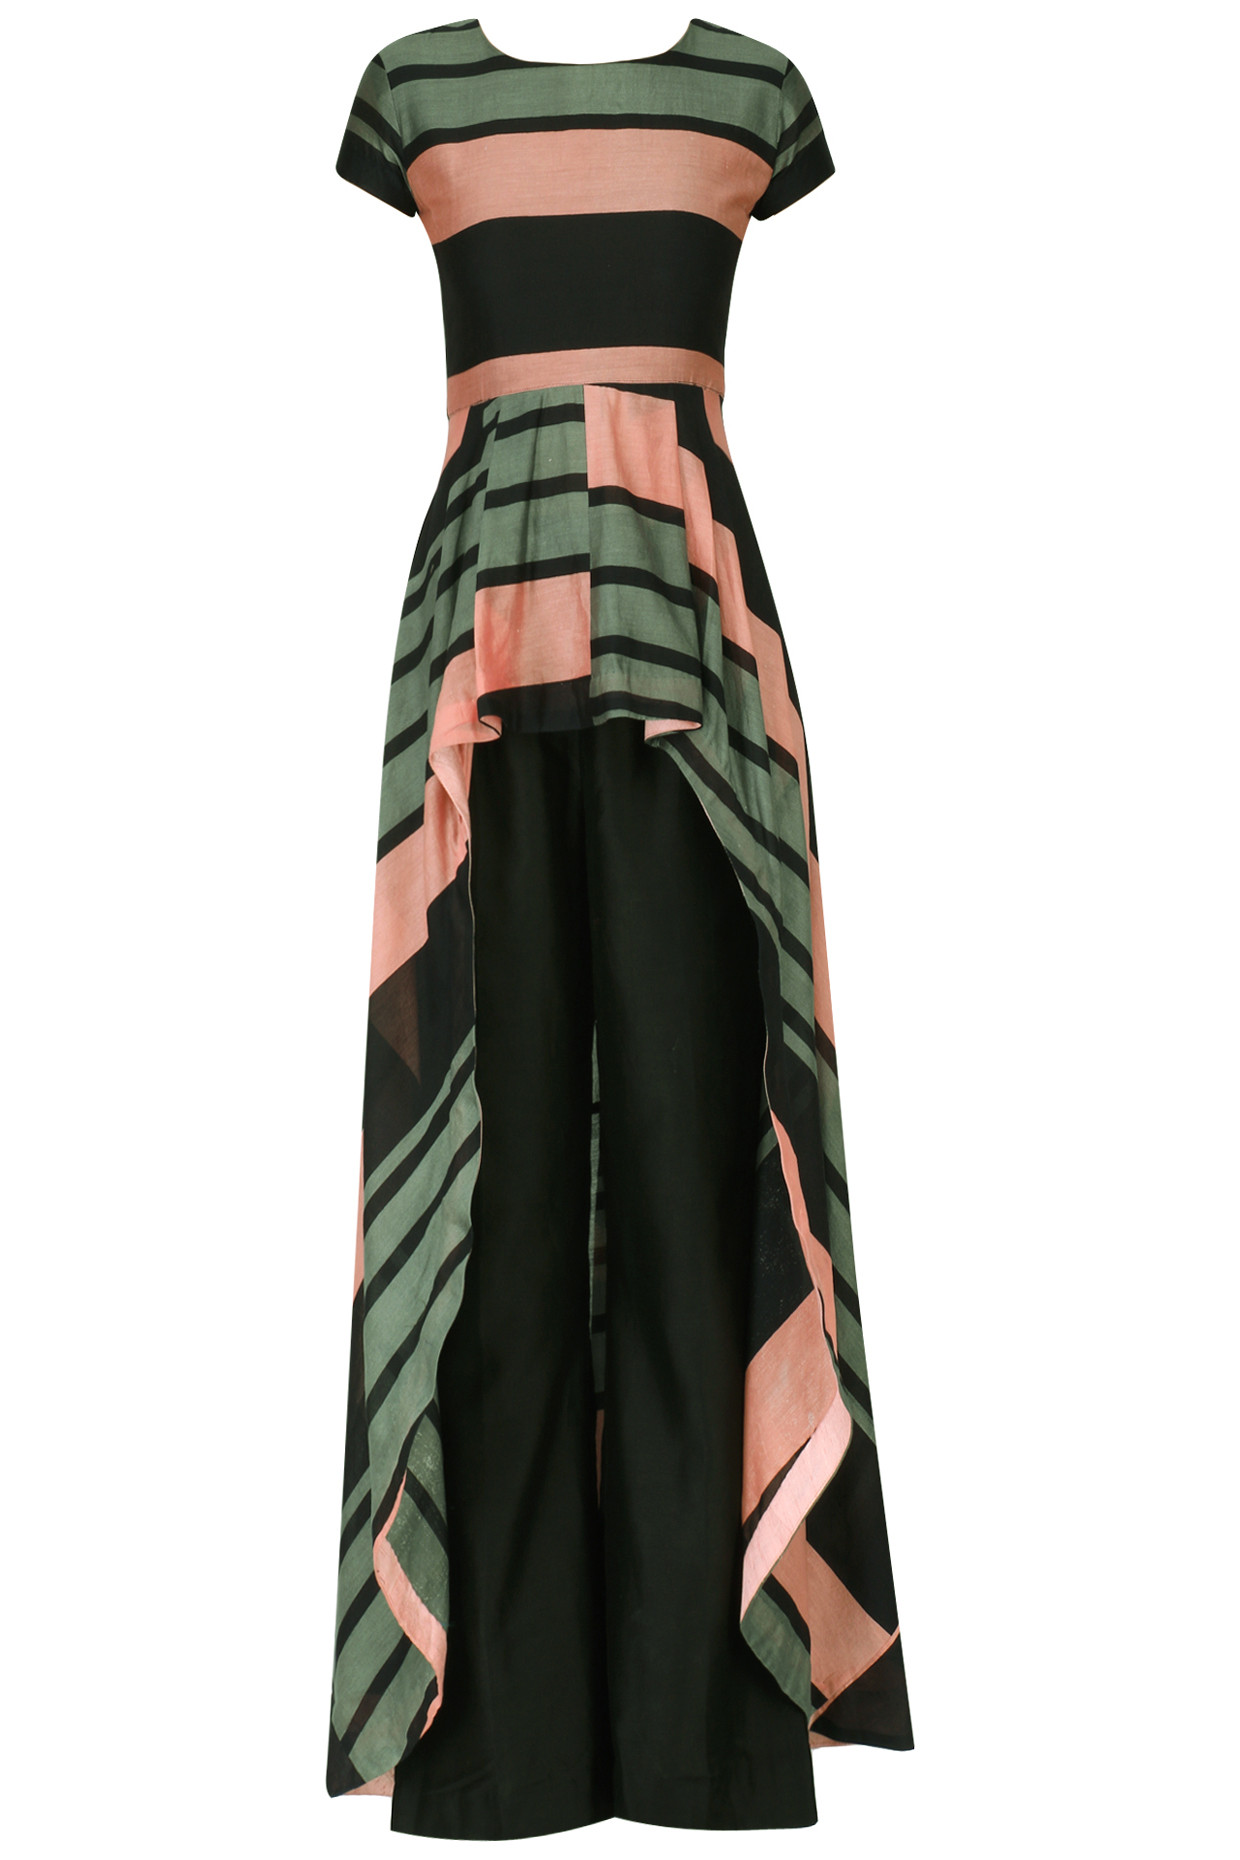 Salmon Pink and Steel Grey Printed Top with Pants by Pallavi Jaipur